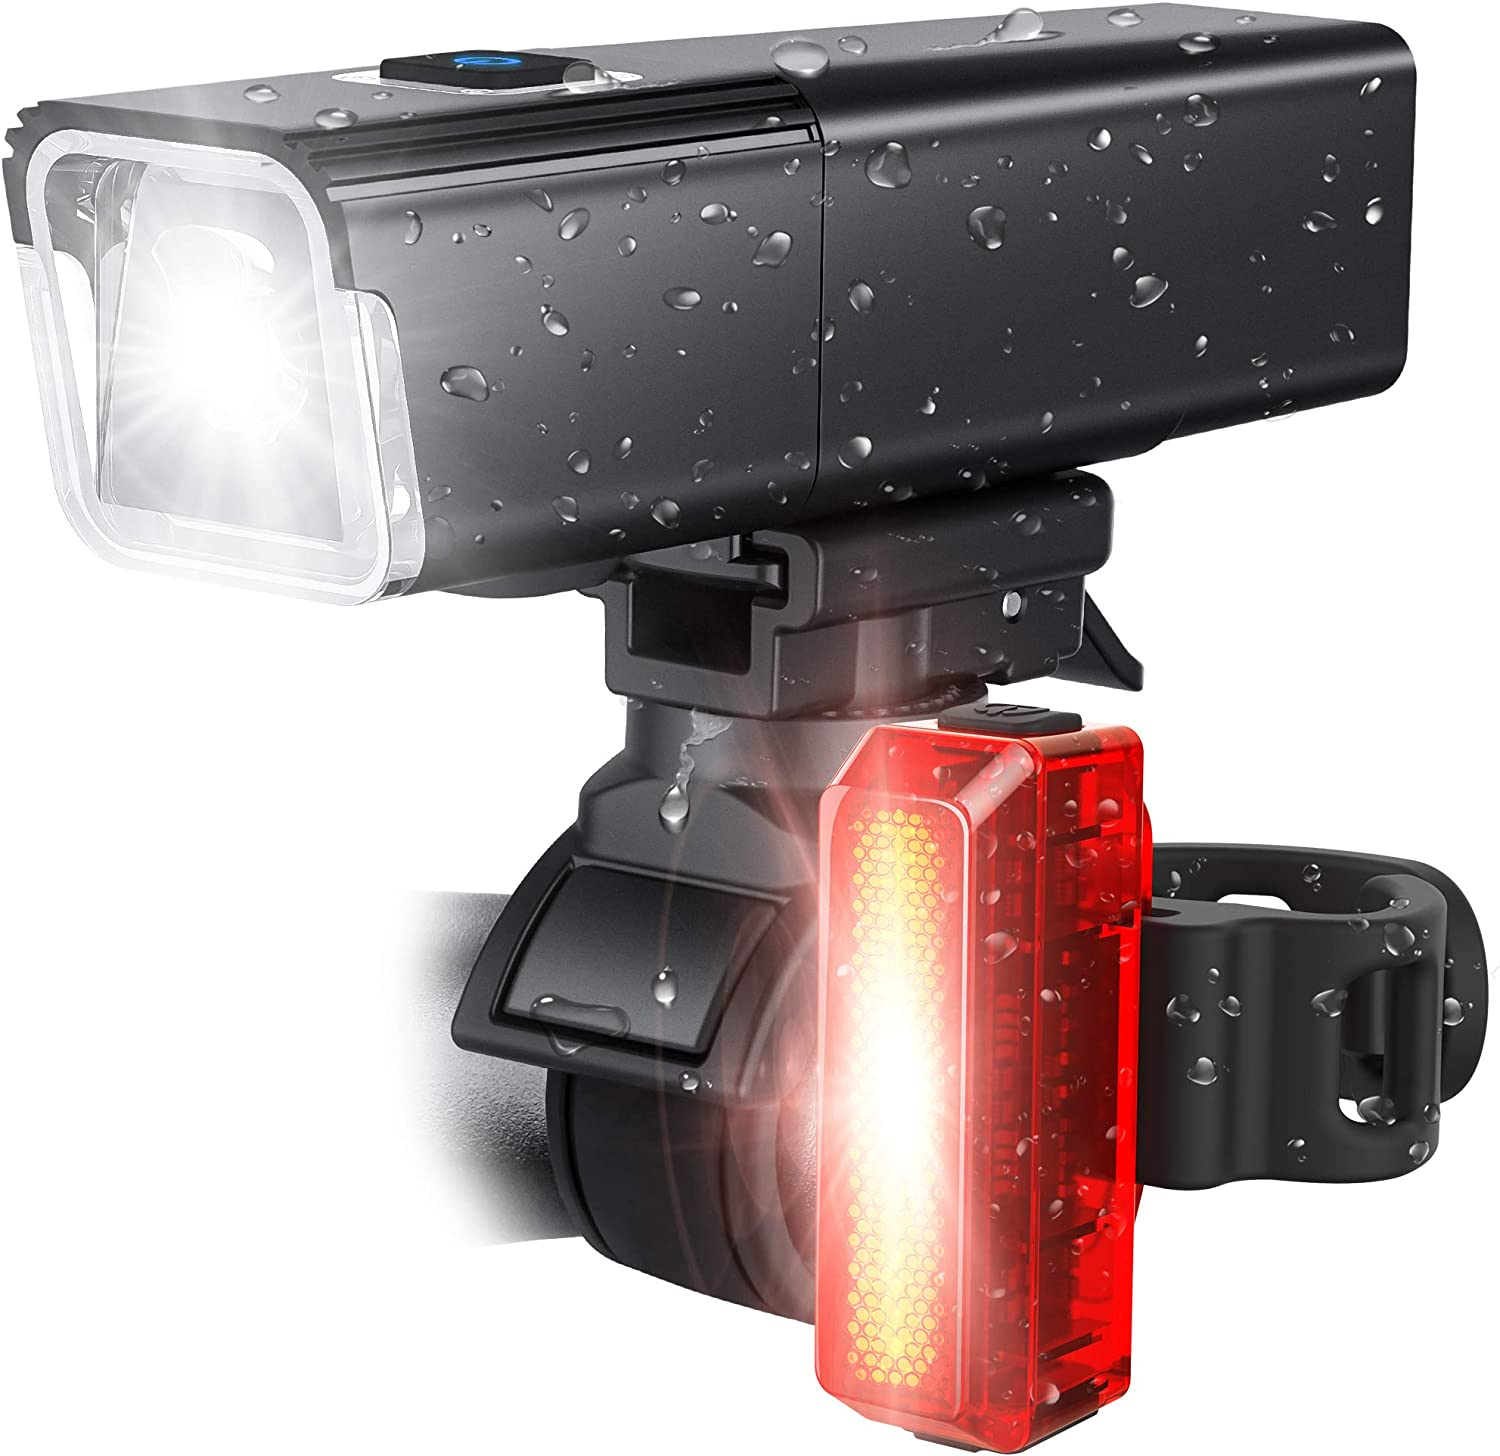 Bike Lights Max 61% OFF Front and Reservation Back - Lumens LED True 800 Headlight